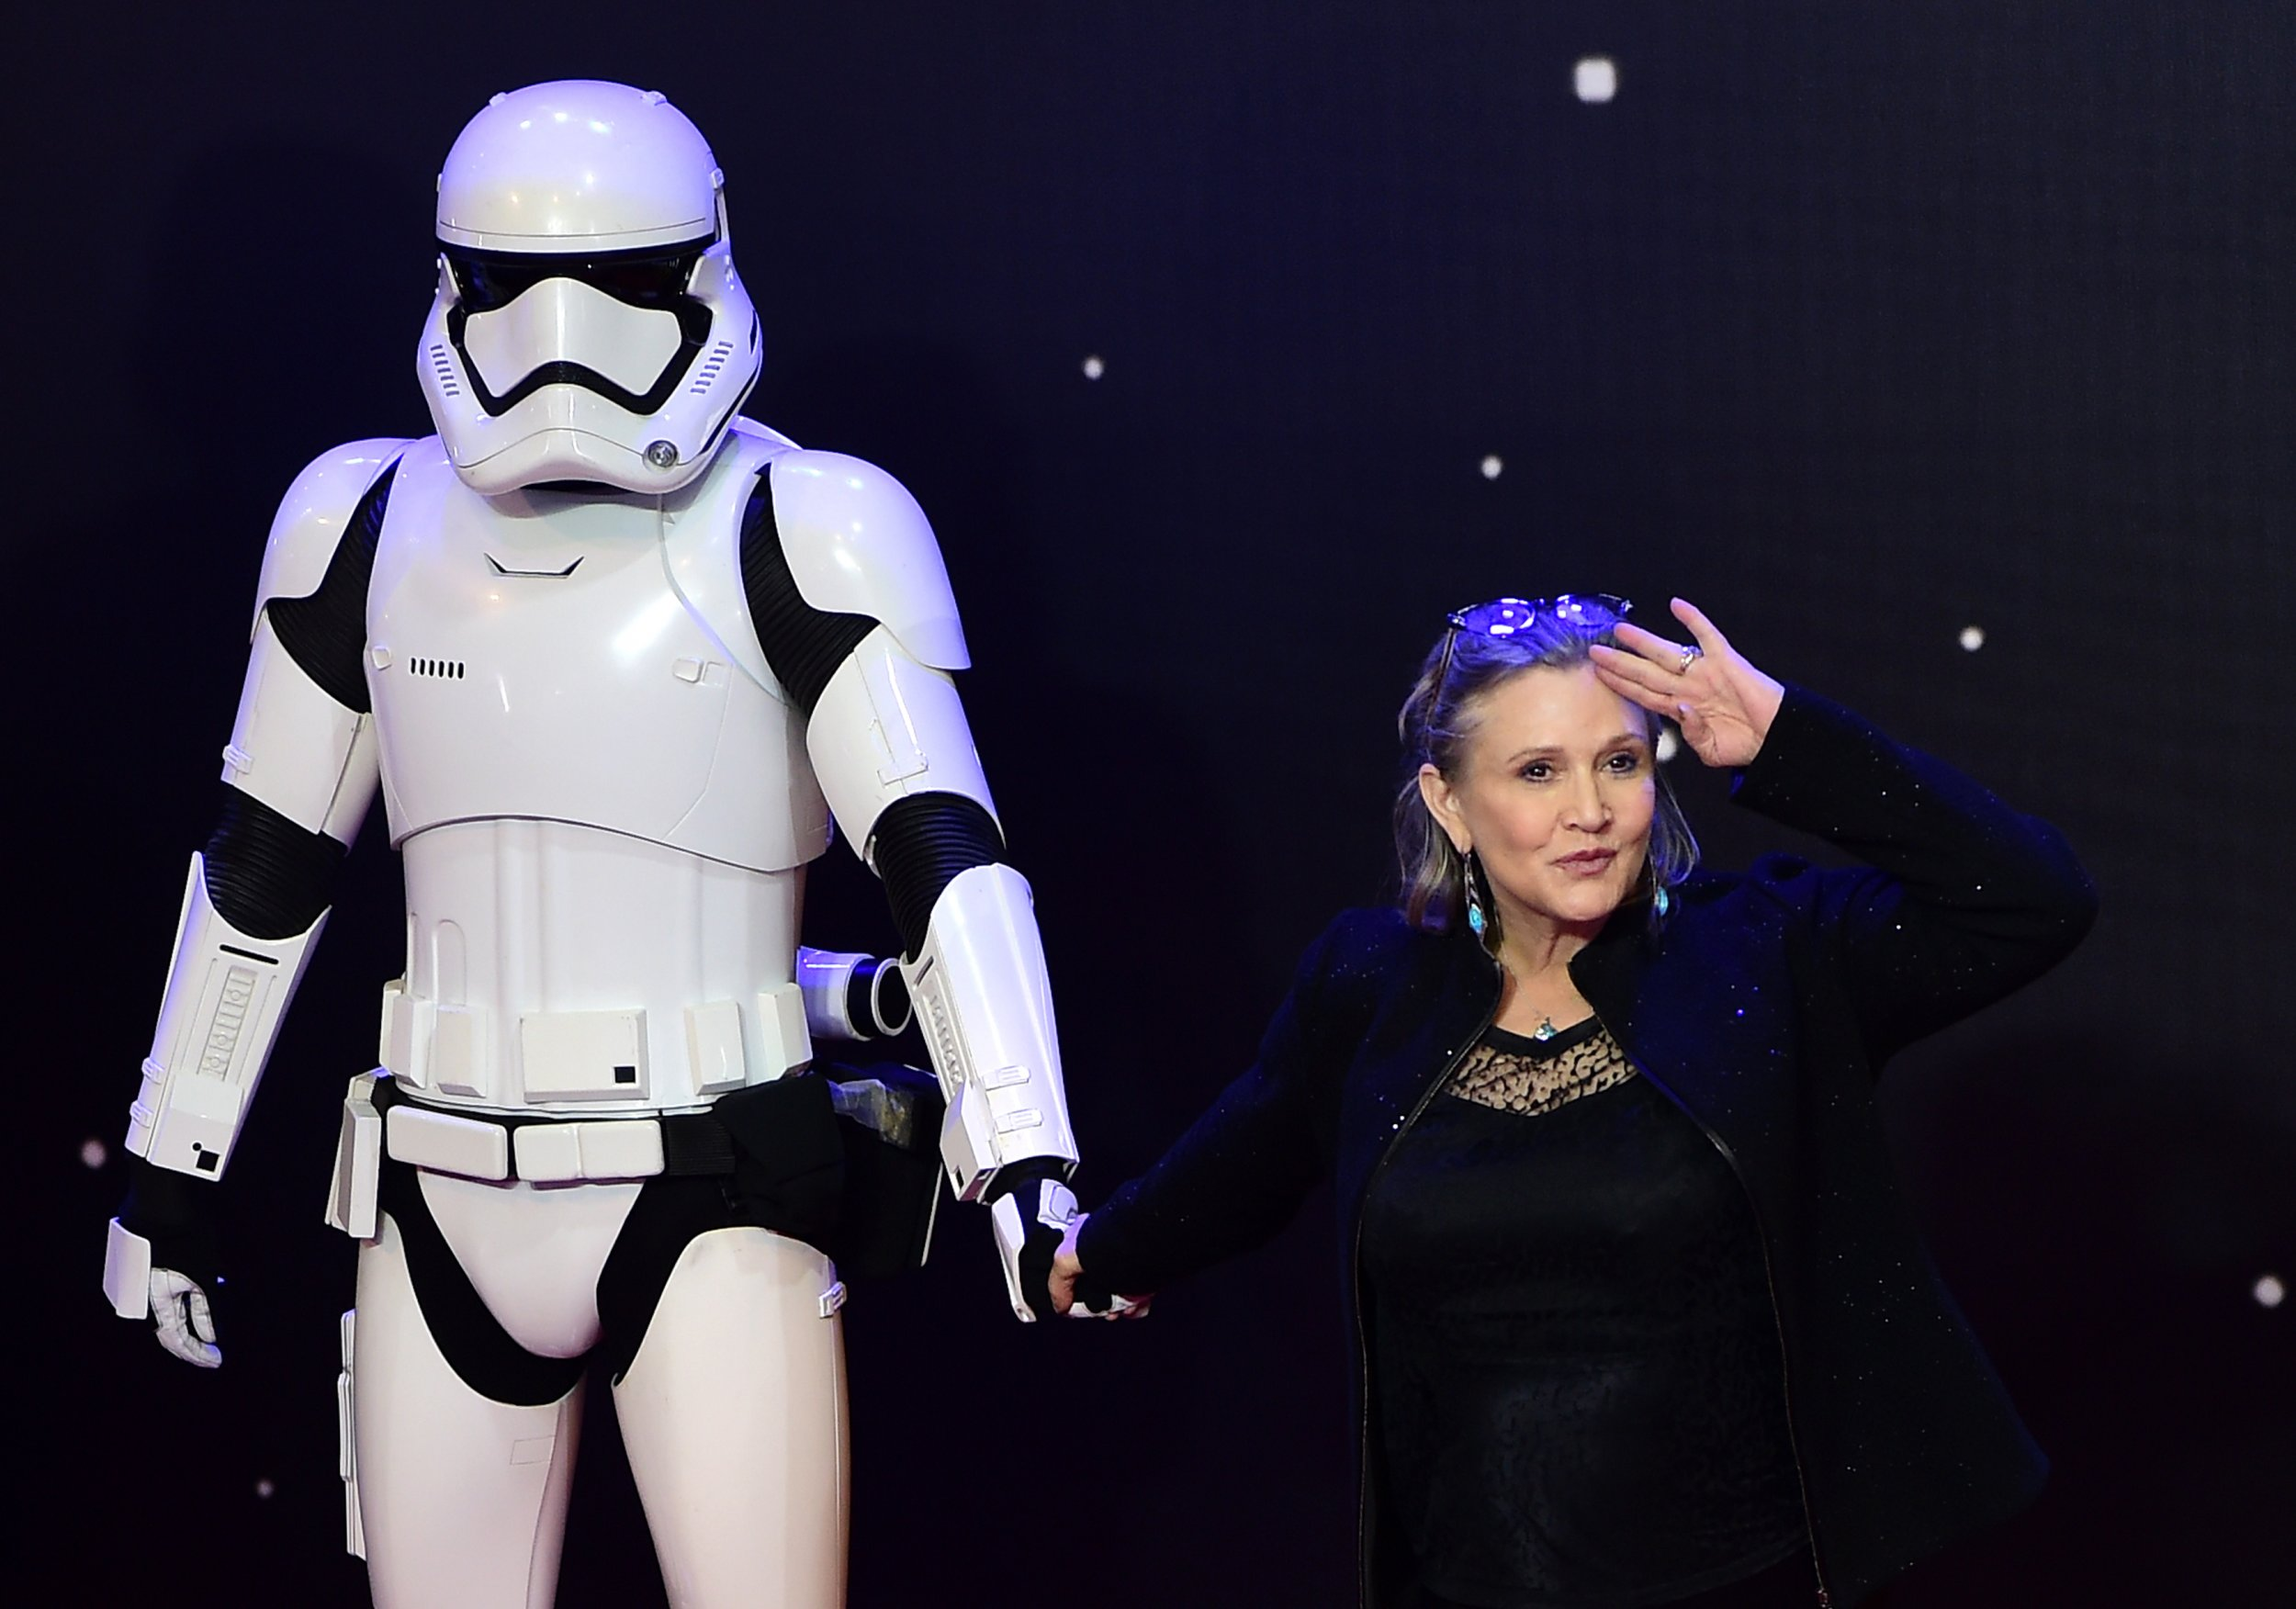 Carrie Fisher stormtrooper